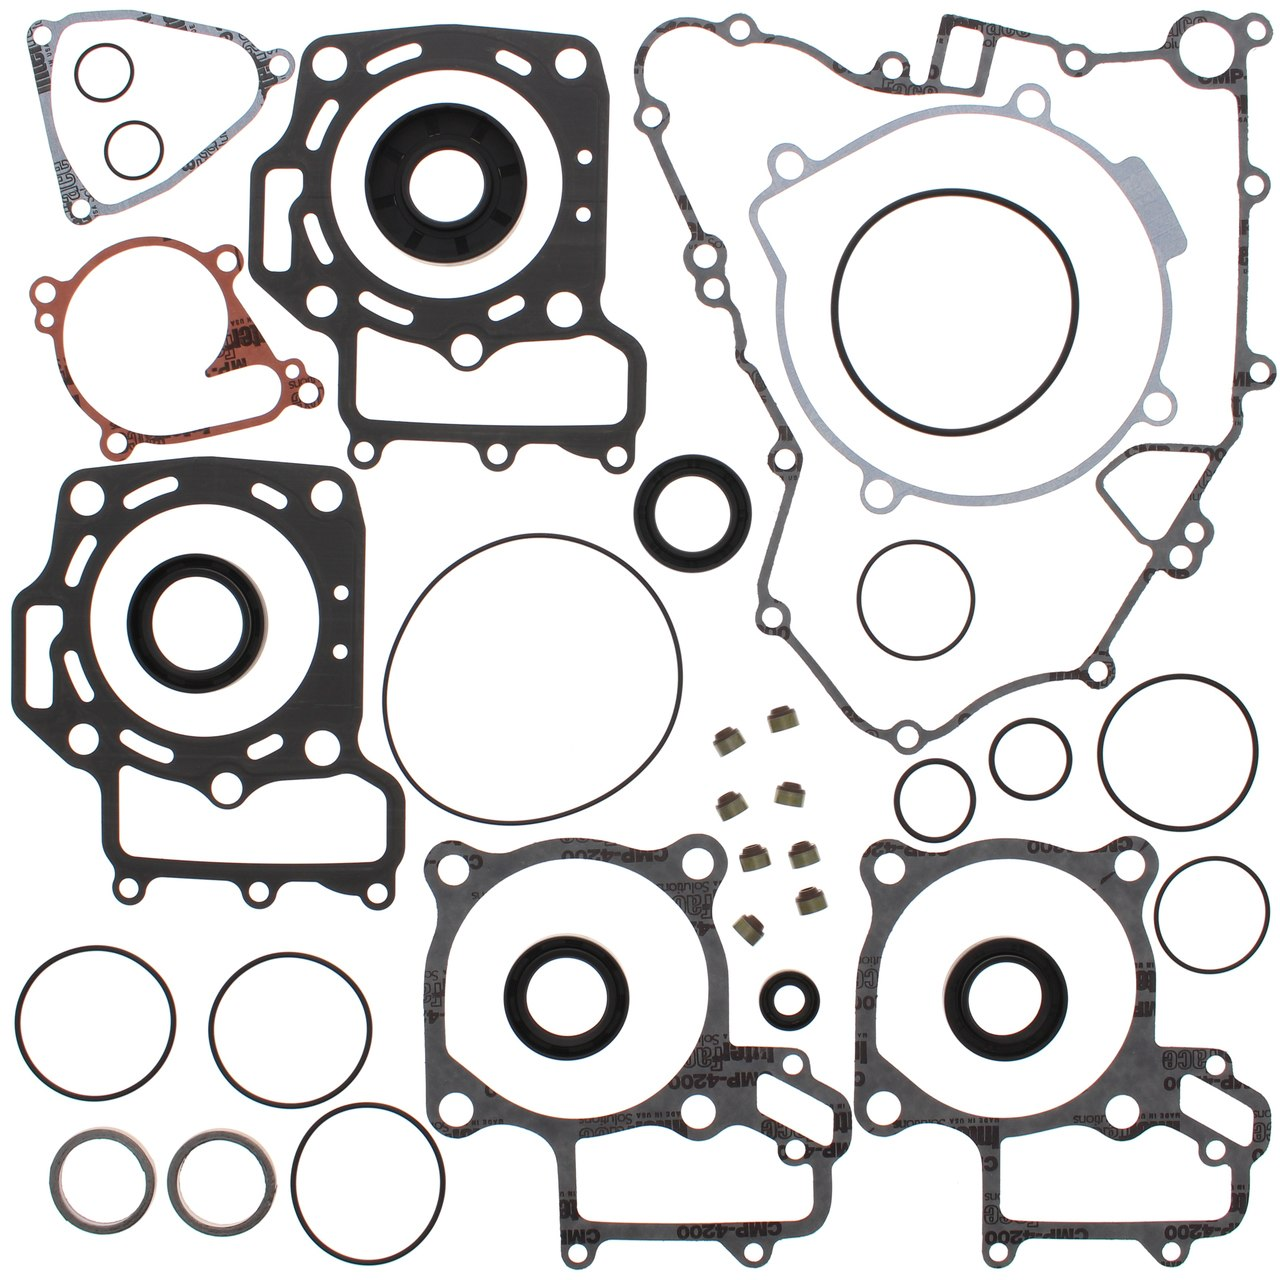 Complete Gasket Kit w/ Oil Seals Kawasaki KFX 700 V-Force